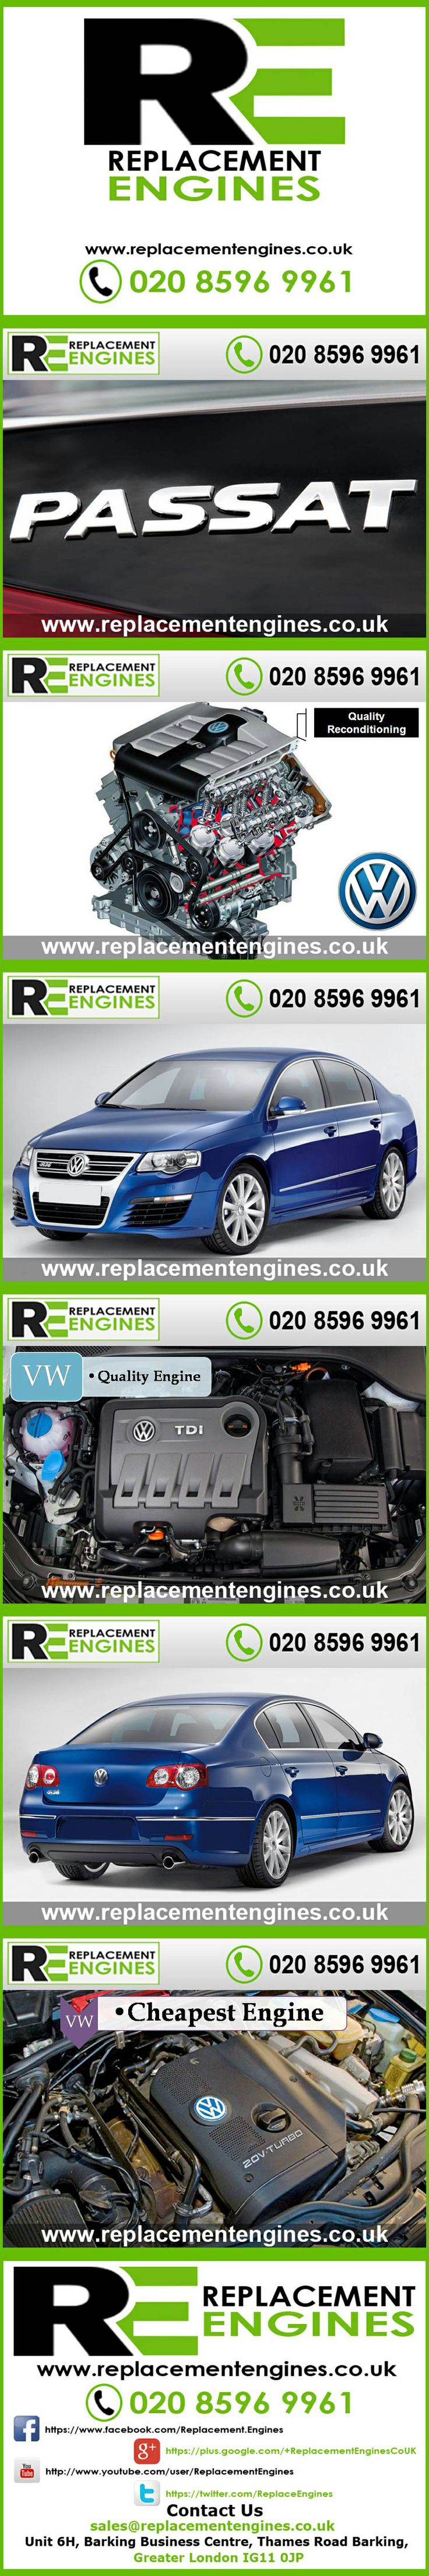 VW Passat Engines for sale at the cheapest prices, we have low mileage used & reconditioned engines in stock now, ready to be delivered to anywhere in the UK or overseas, visit Replacement Engines website here.  http://www.replacementengines.co.uk/car-md.asp?part=all-vw-passat-engine&mo_id=31139